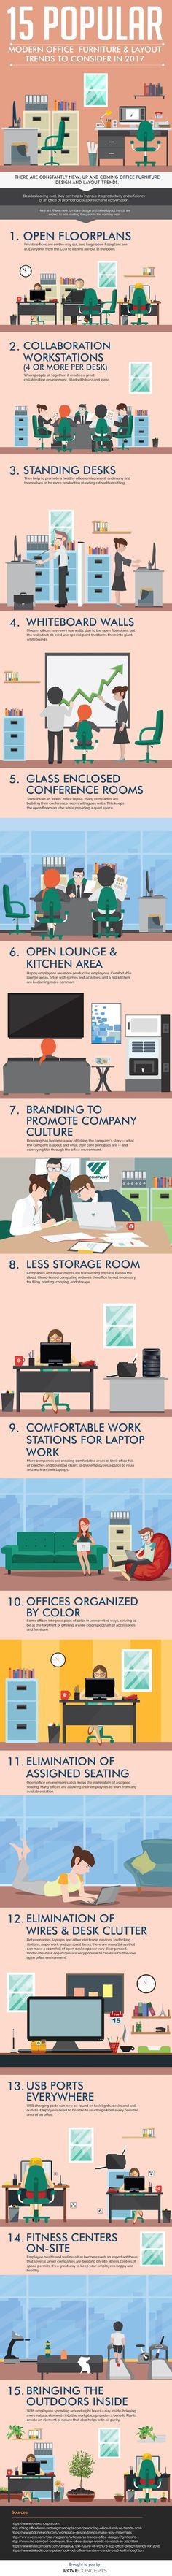 15 popular #office #trends 2017 | t3n